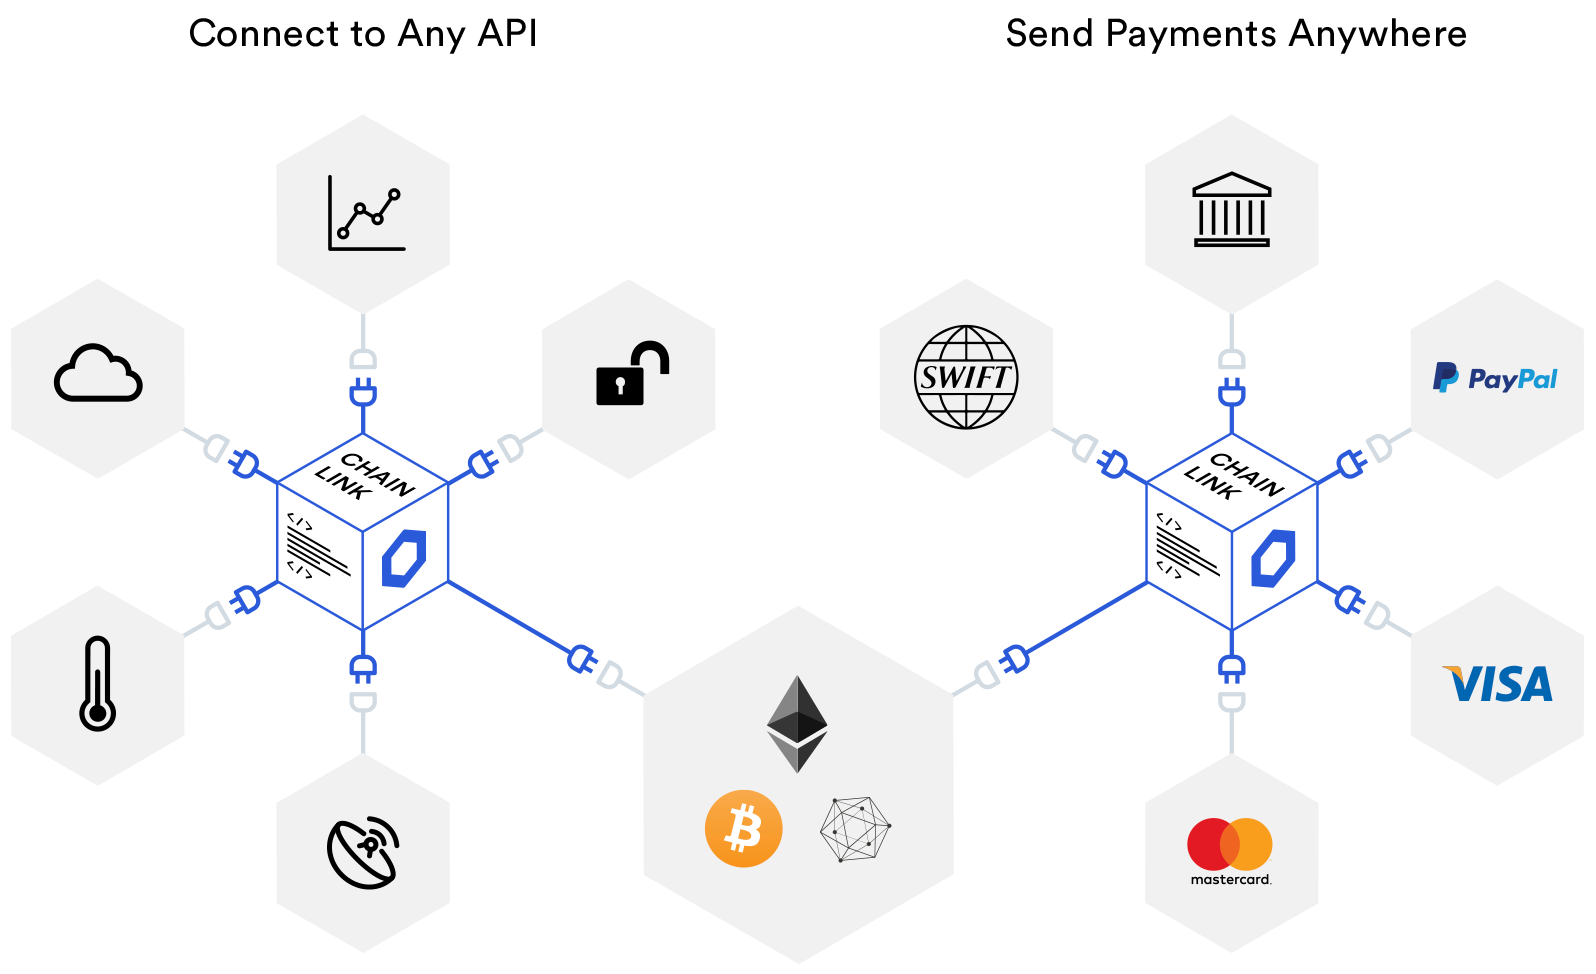 Chainlink connects smart contracts on any blockchain to any input and output